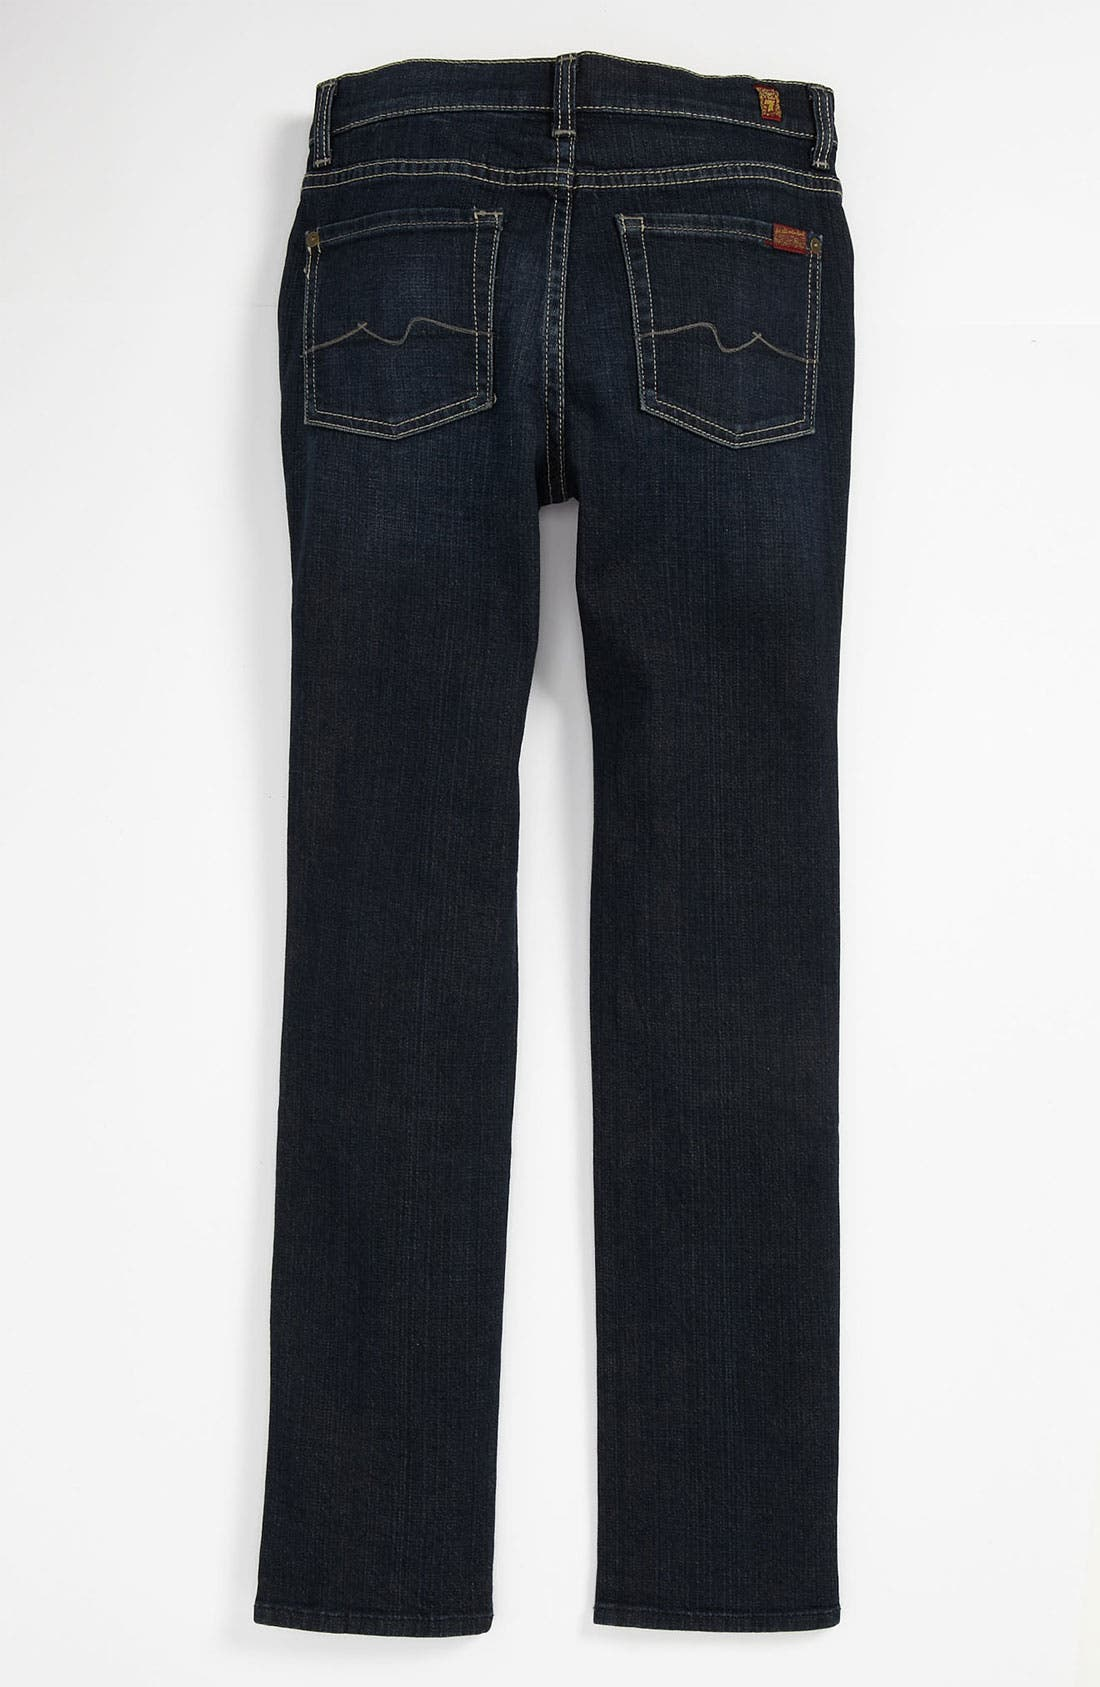 Alternate Image 1 Selected - 7 For All Mankind® 'Rhigby' Slim Leg Jeans (Big Boys)